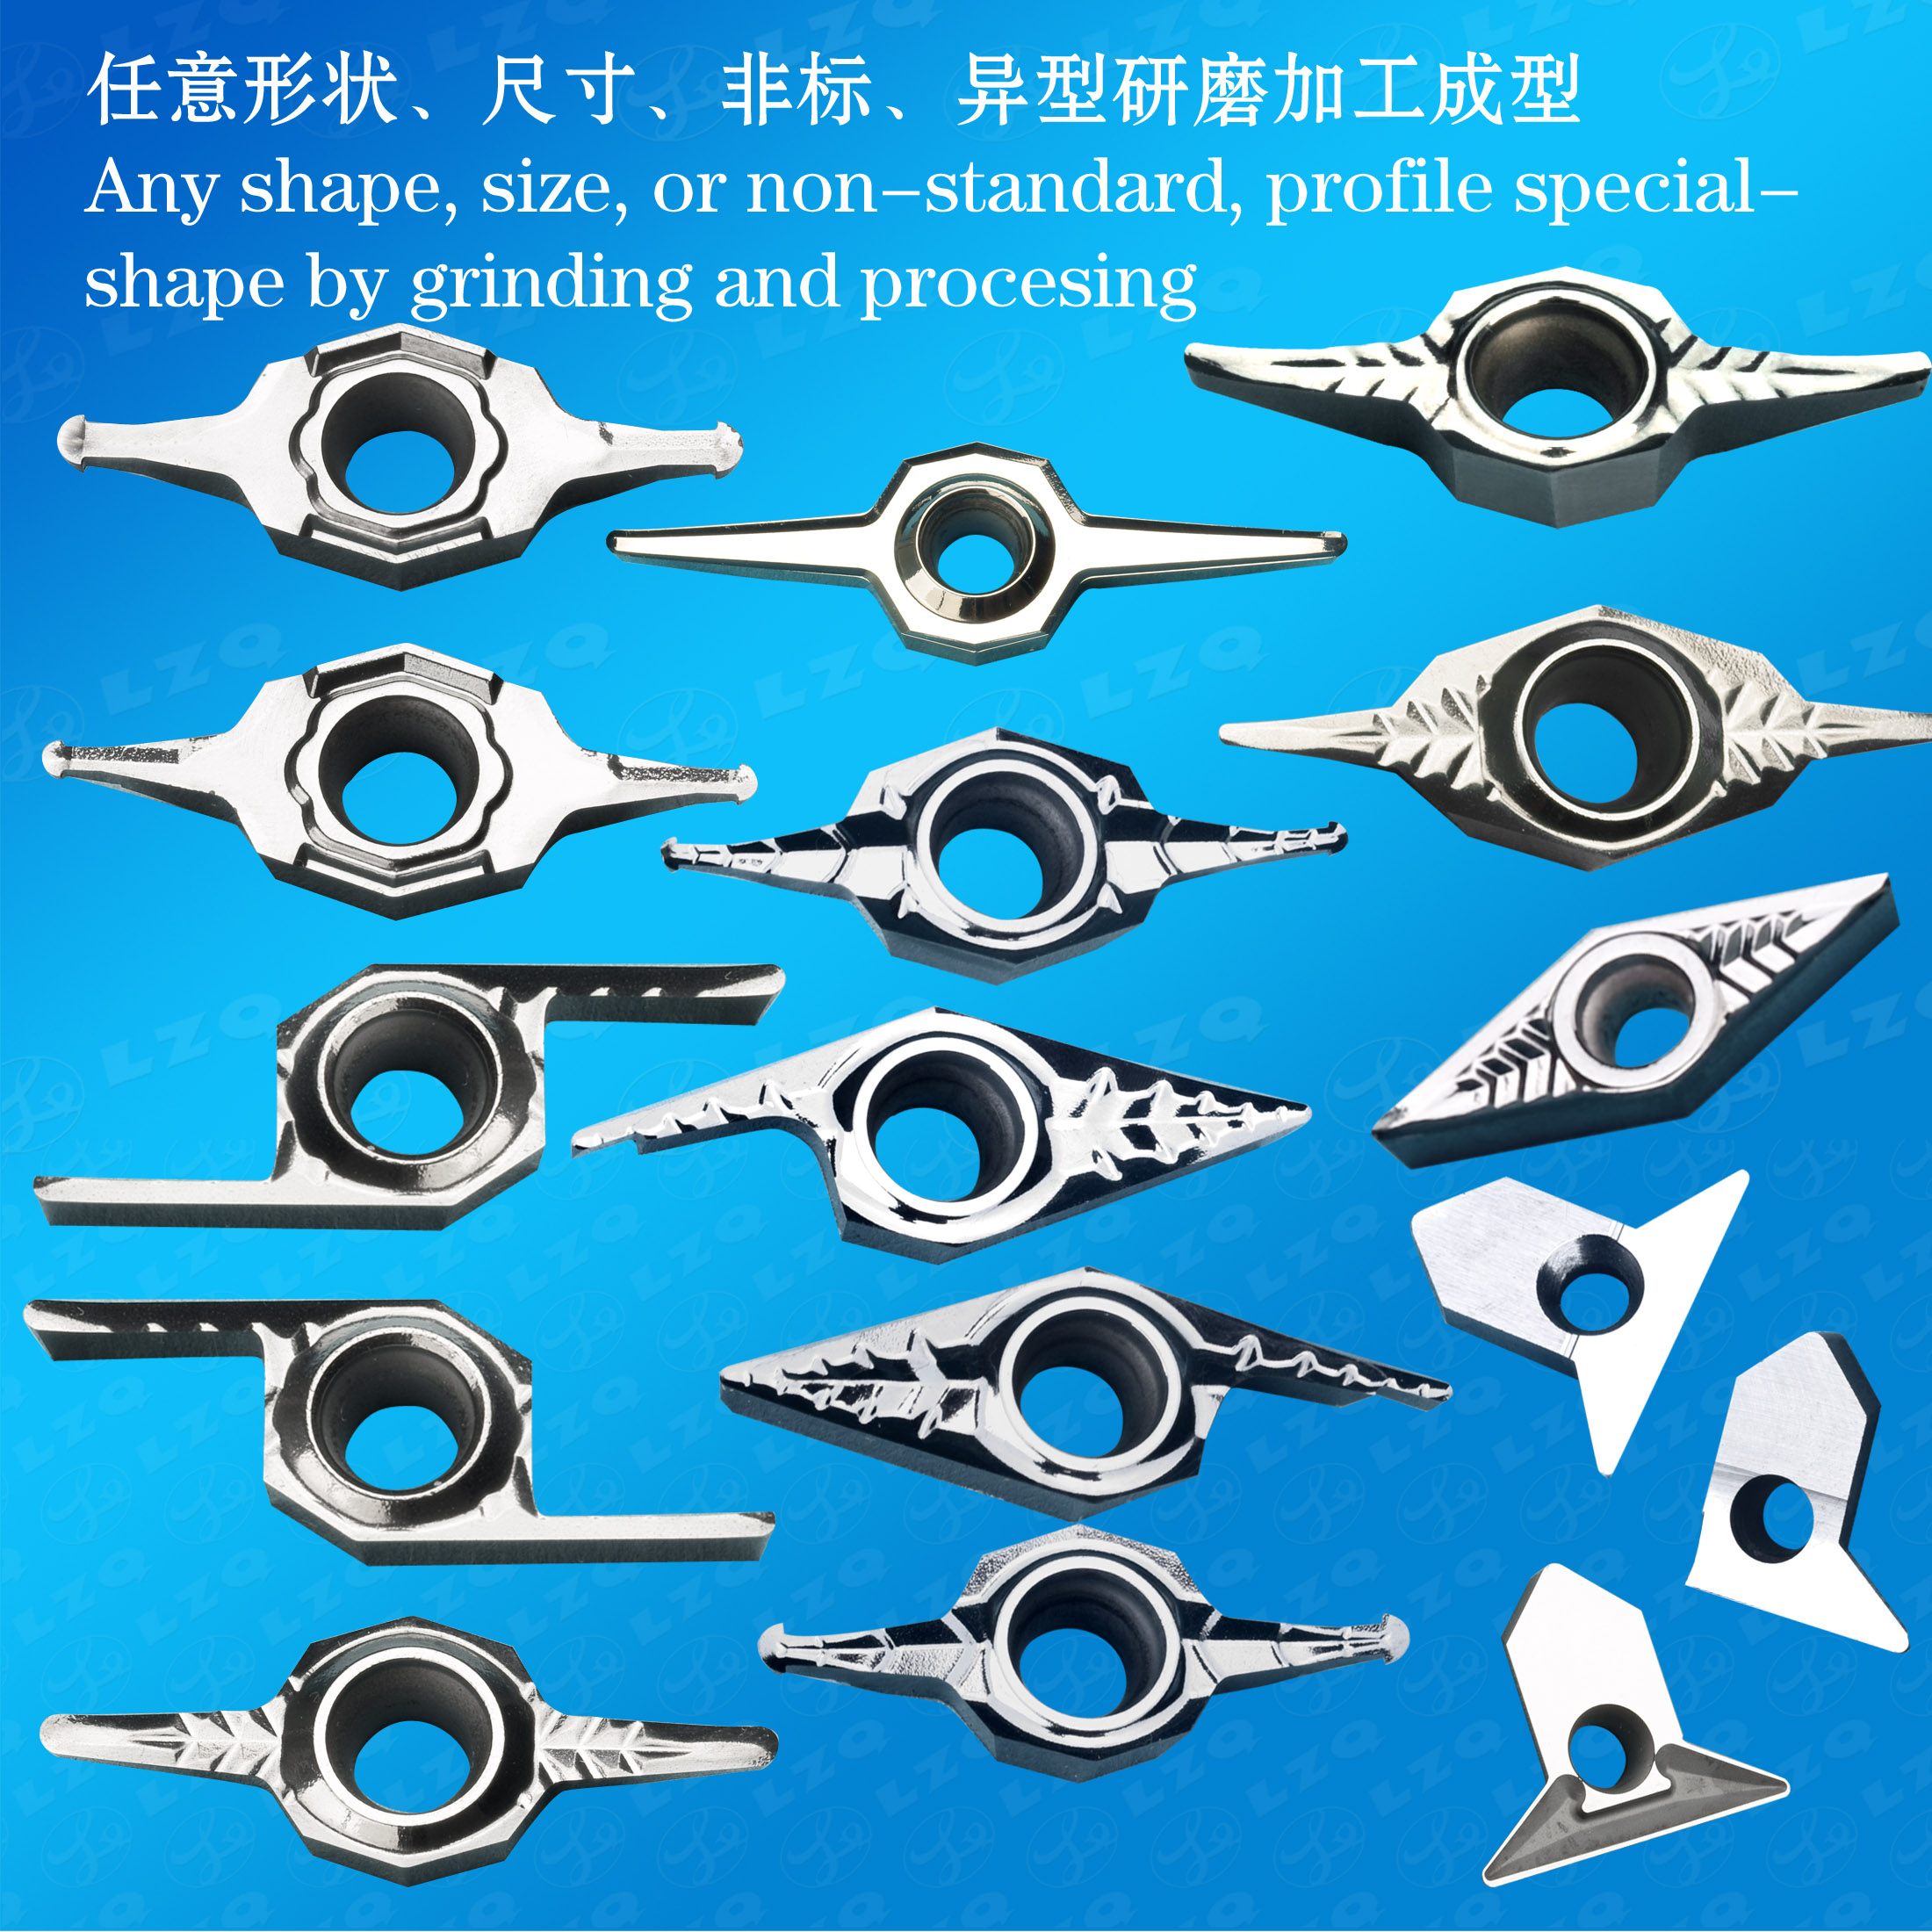 Seal Ring Blades, Rubber Blades, Rubber Turning Tool